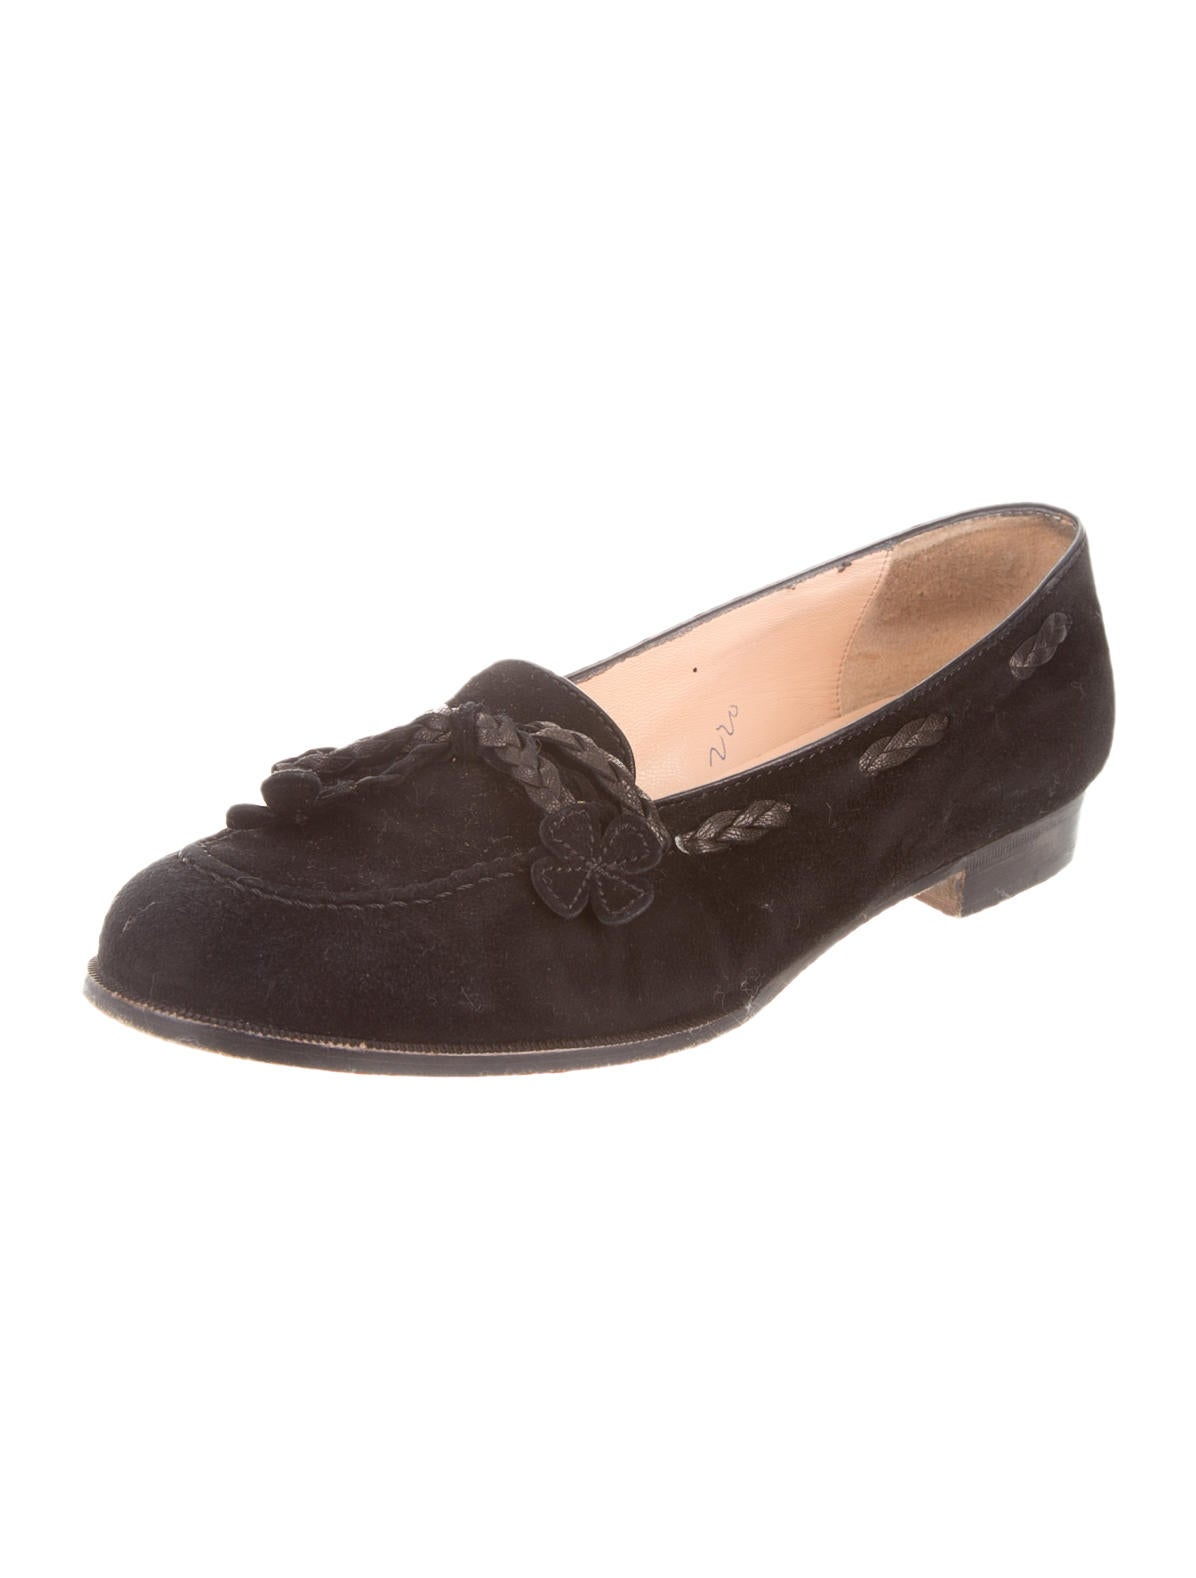 Manolo blahnik round toe loafers shoes moo38590 the for Shoes by manolo blahnik